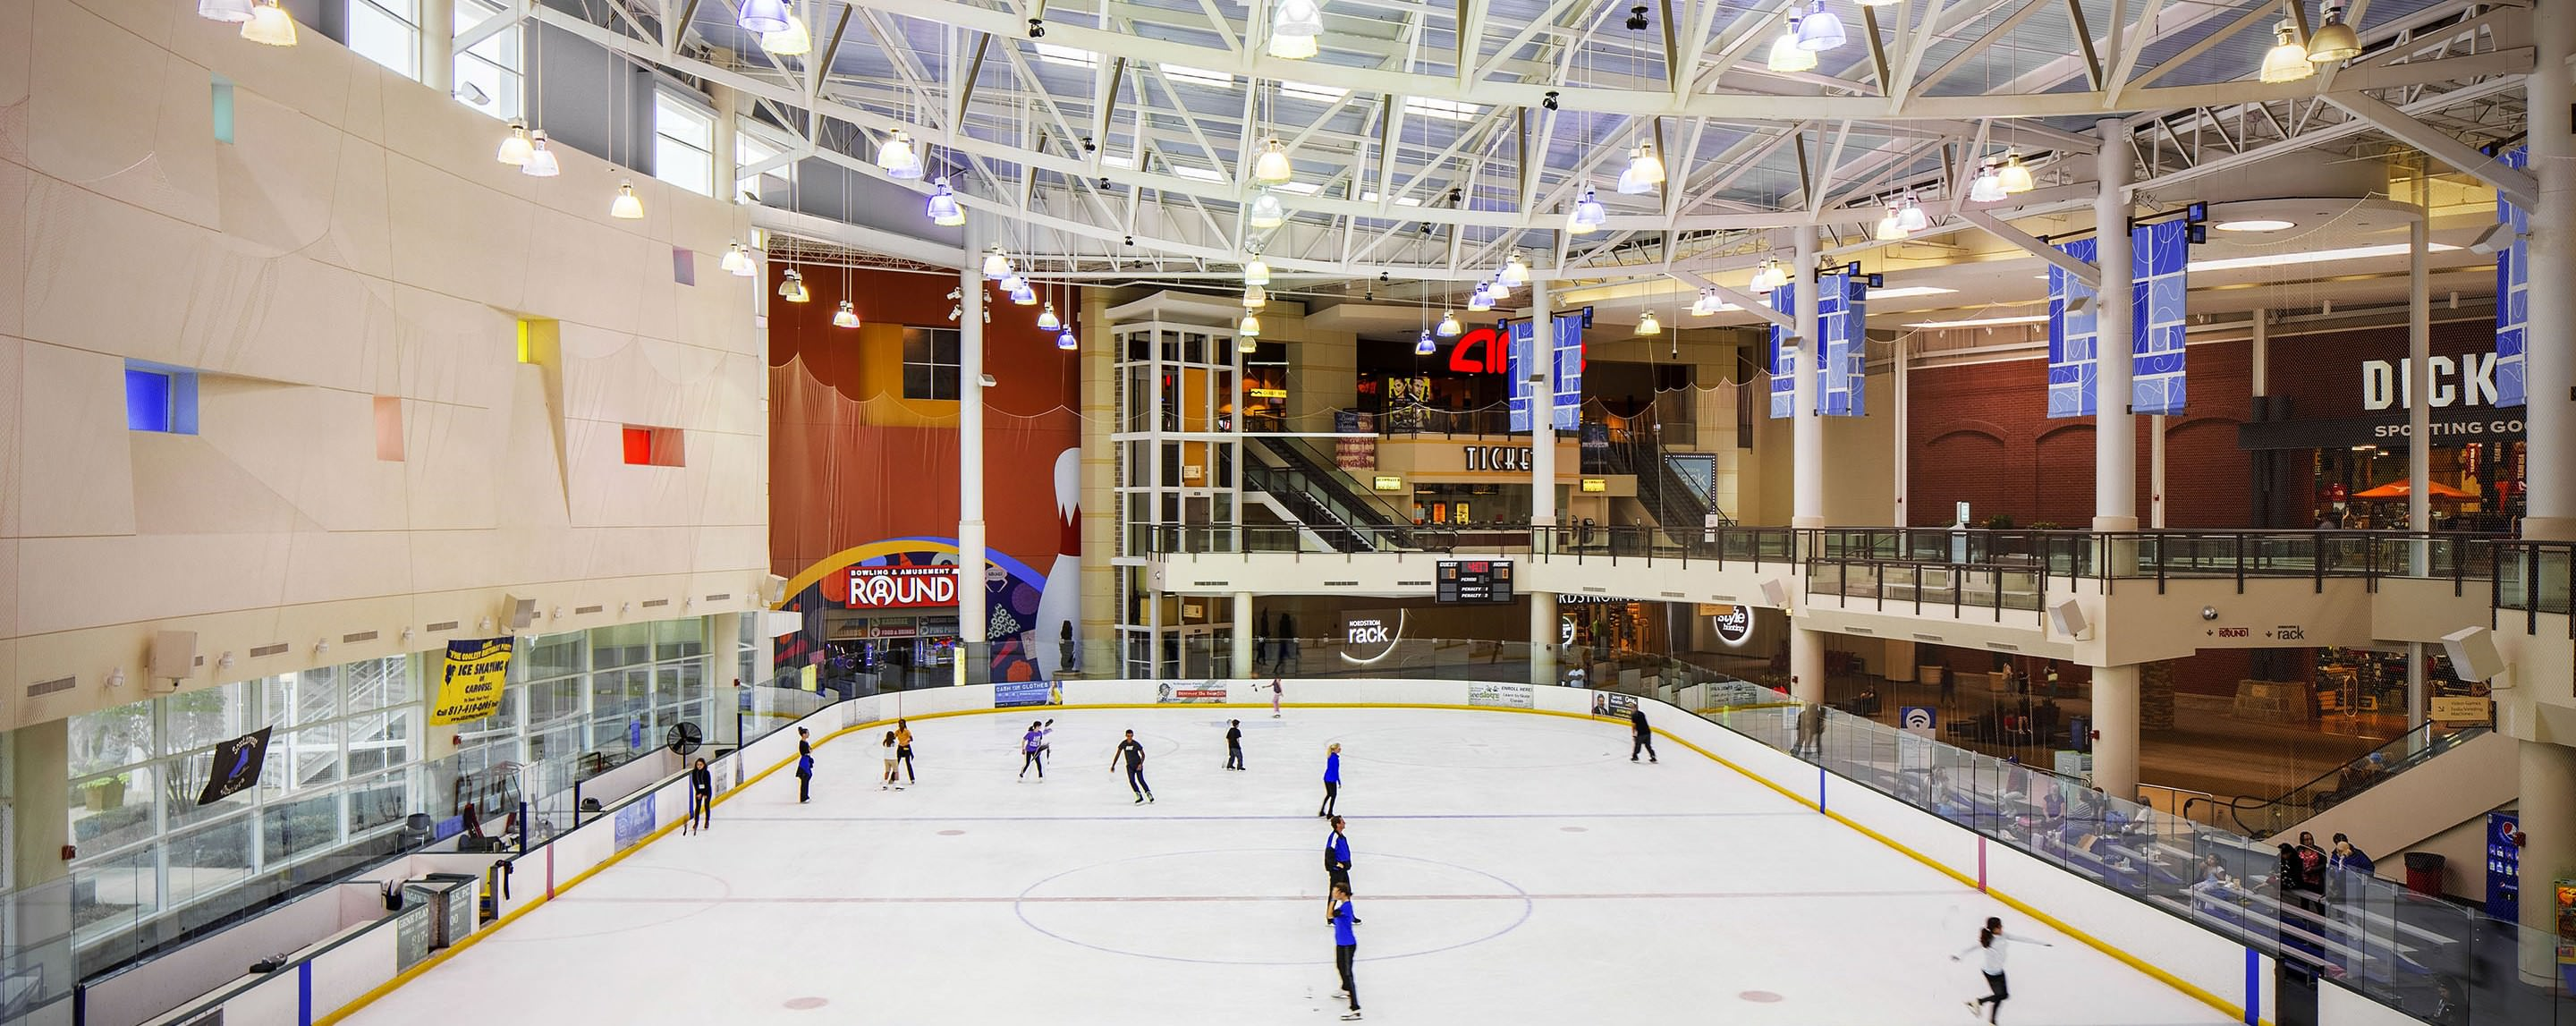 Visitors enjoy the ice skating rink at The Parks Mall at Arlington.